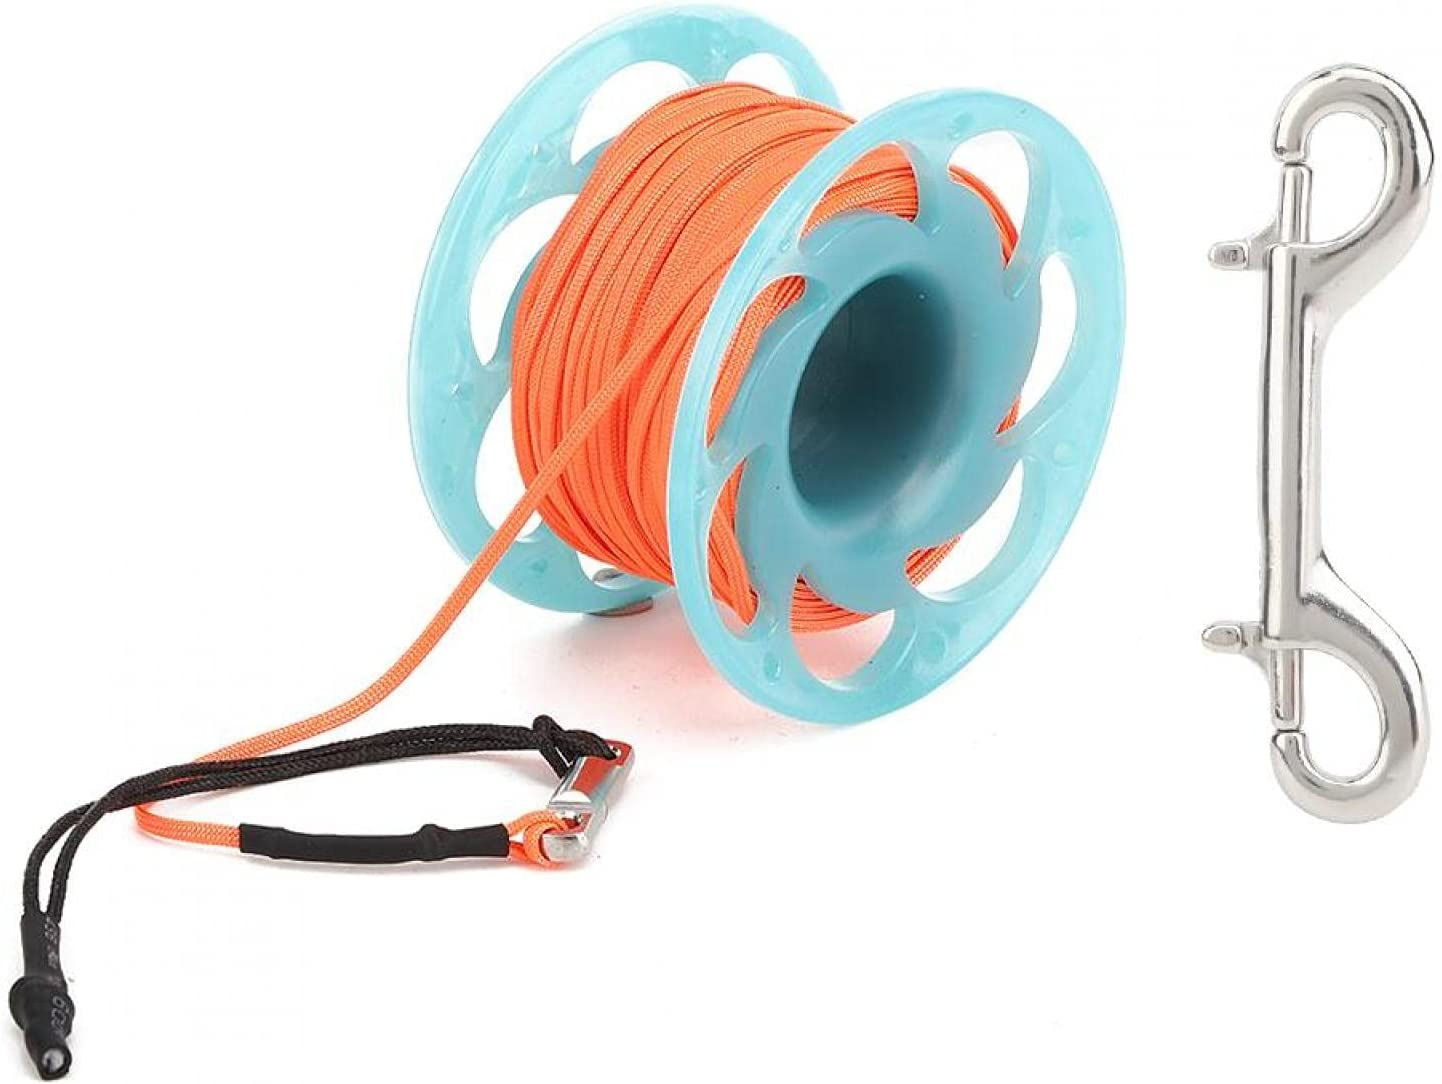 Plastic Line Wheel Popular overseas Wire Reel Diving bl for Long Beach Mall Snorkeling